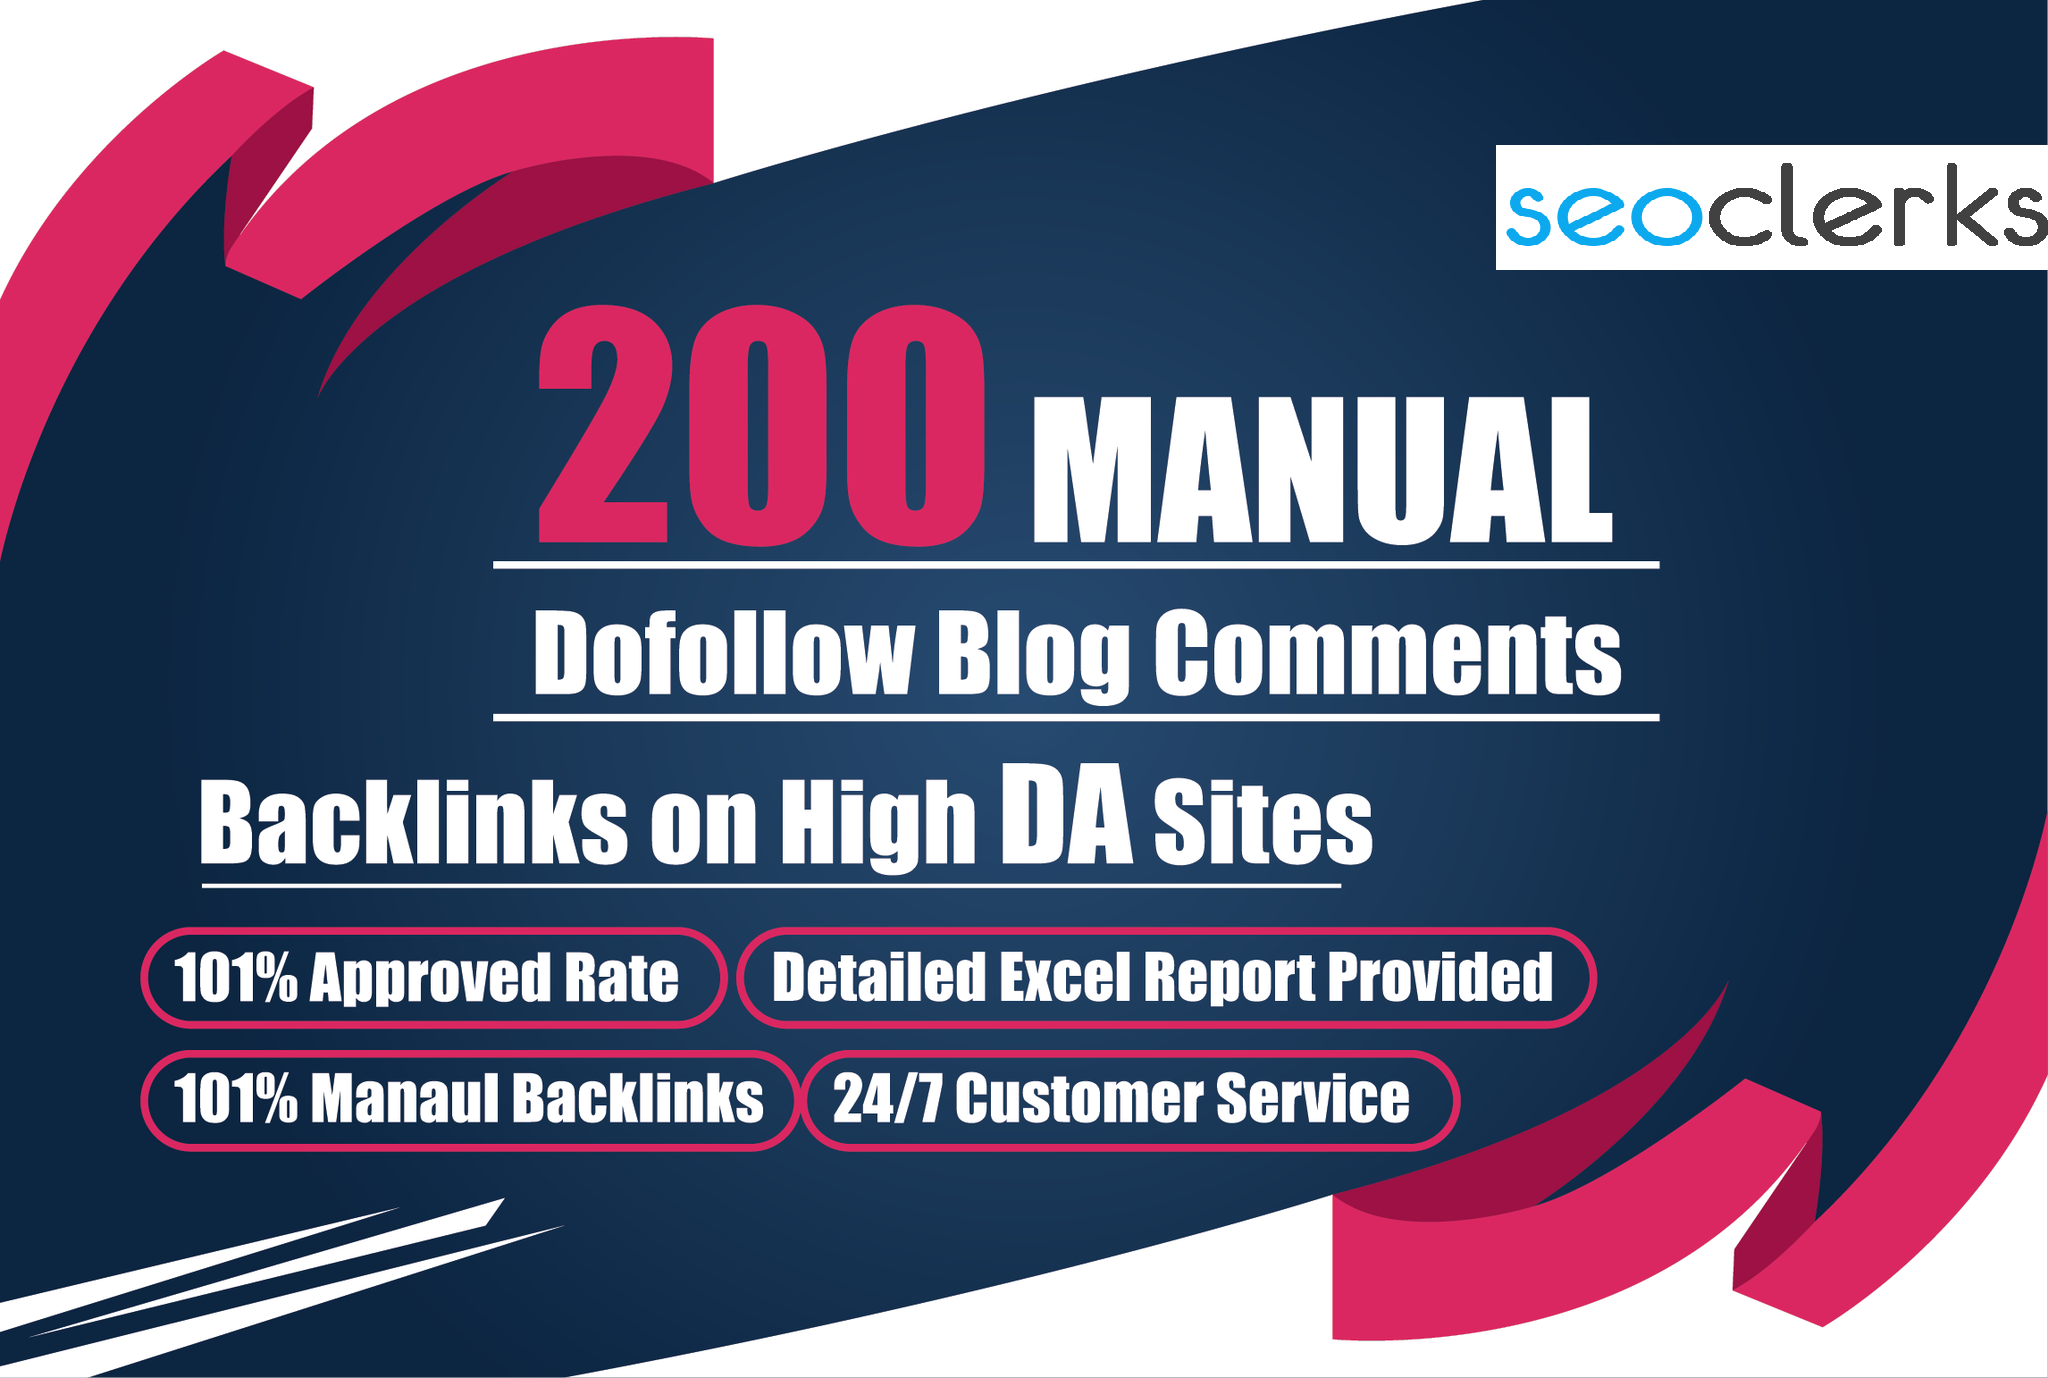 200 Manual Dofollow Blog Comments On Relevant site